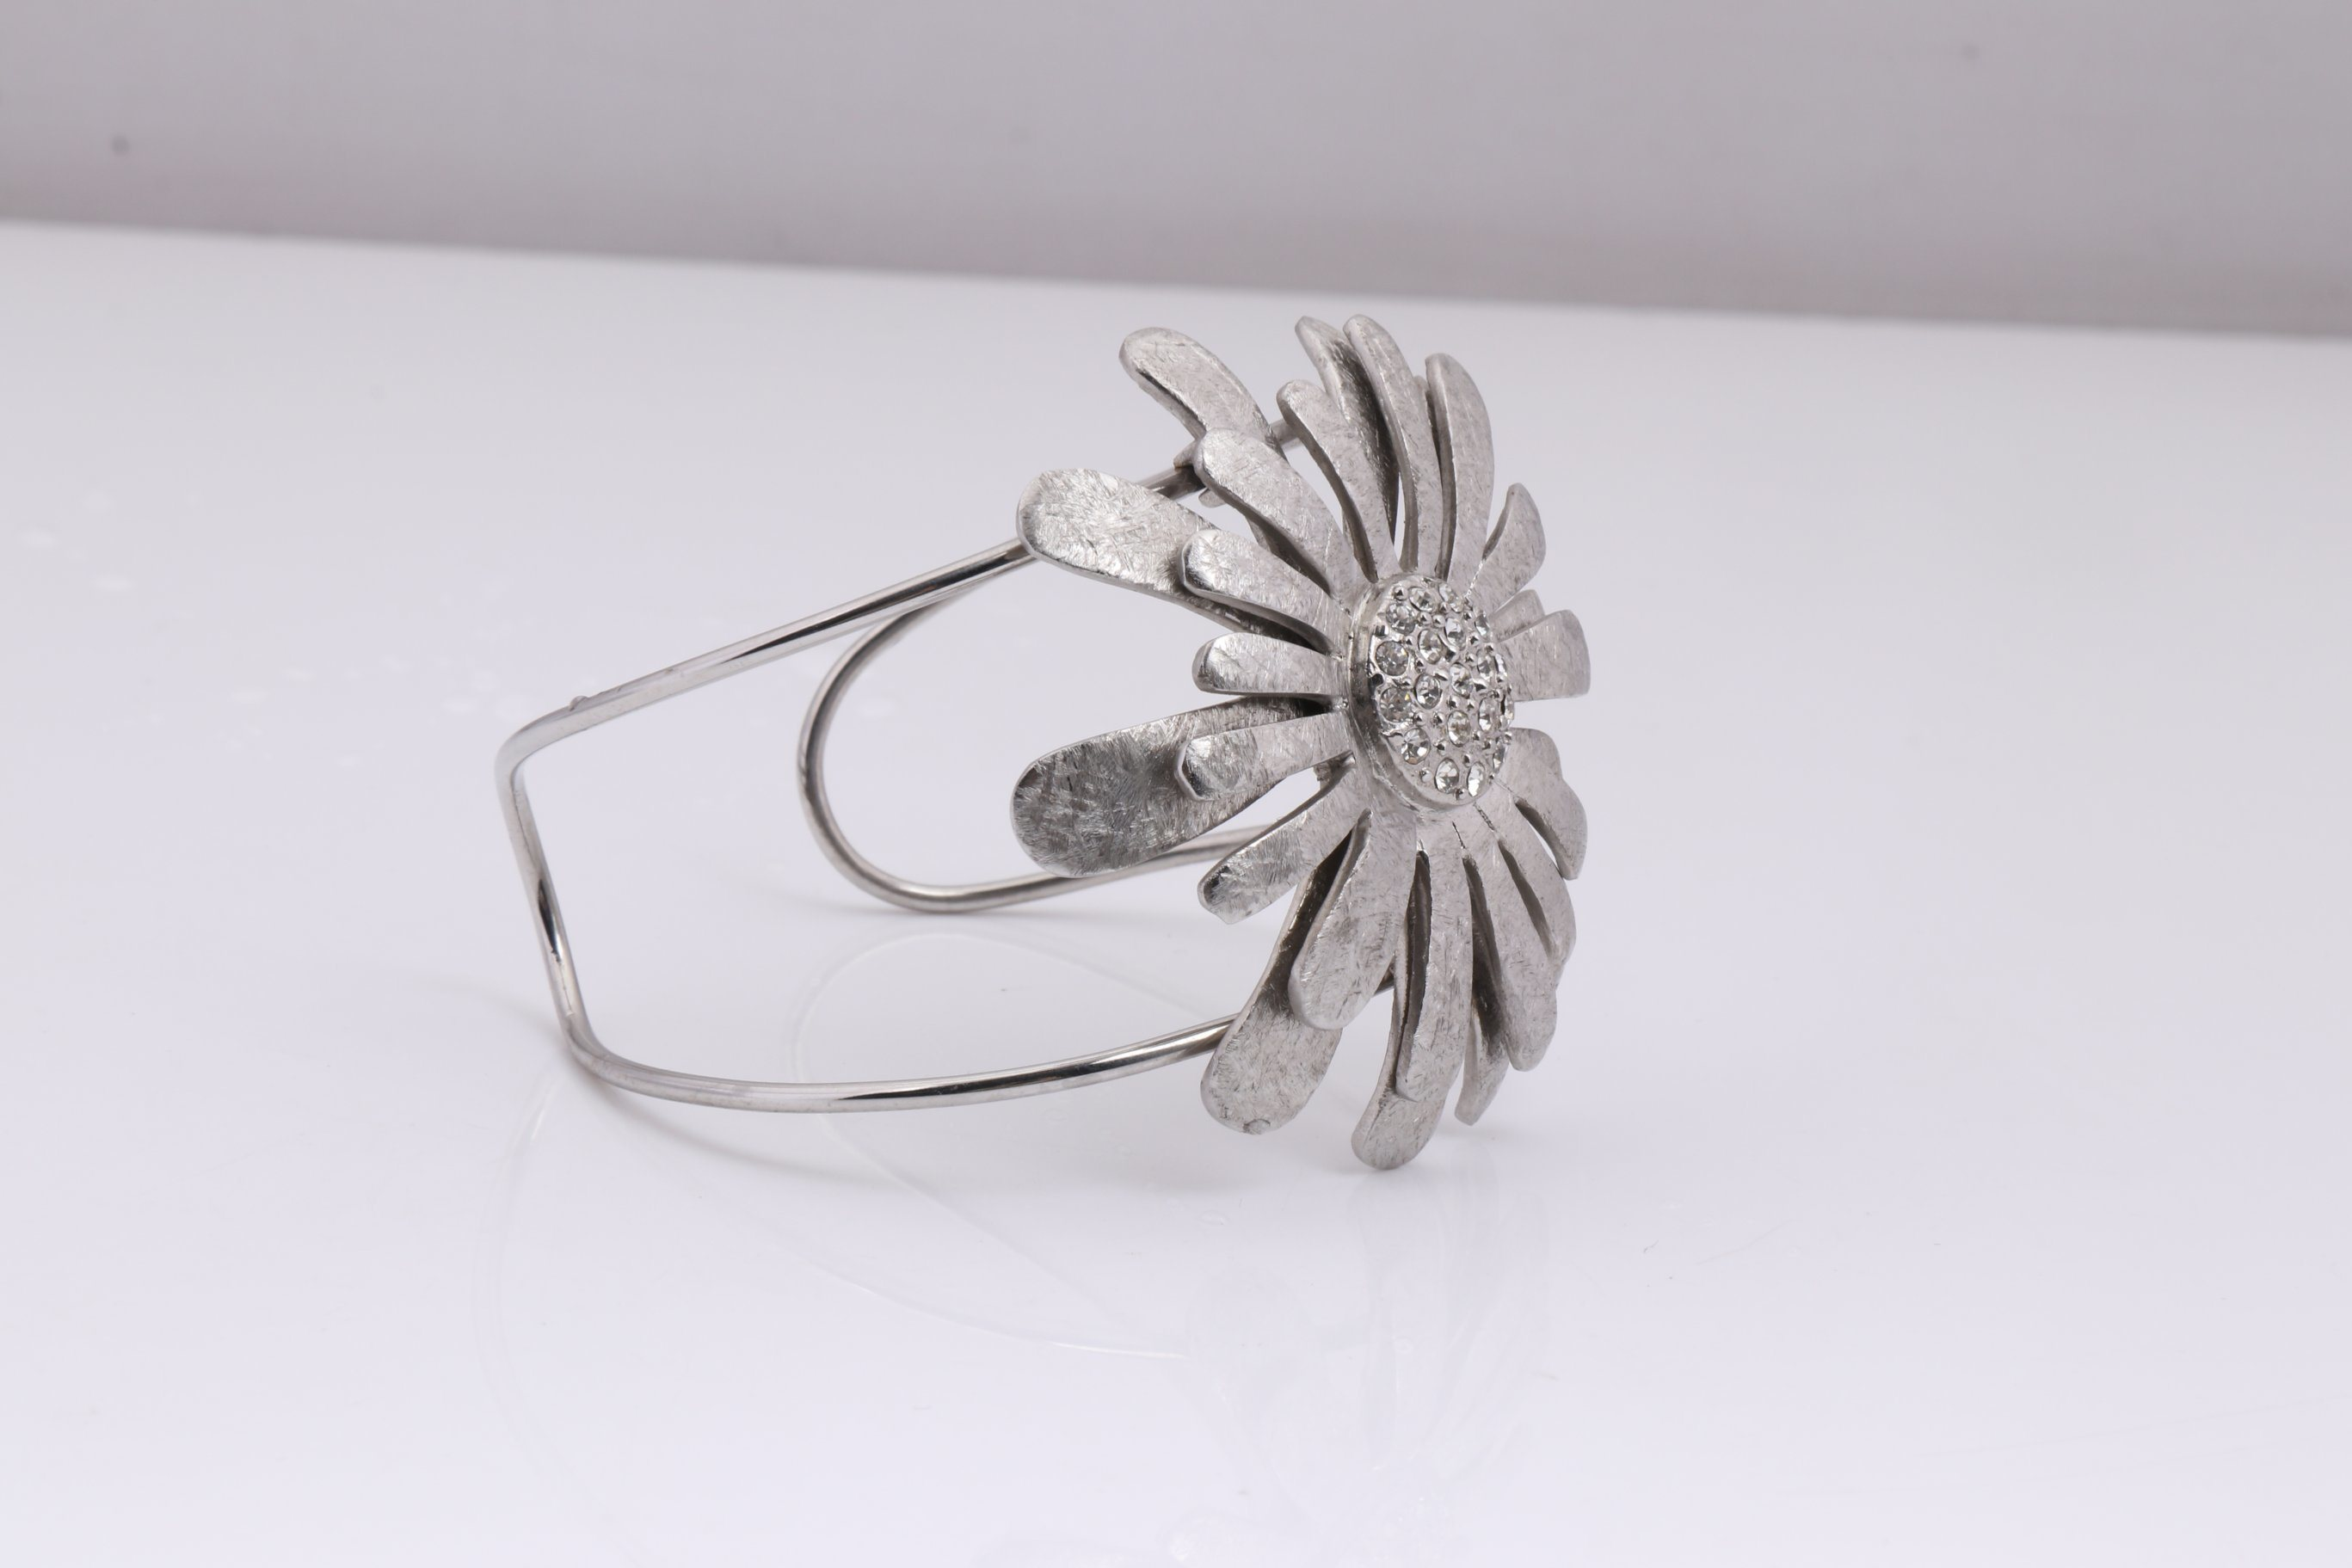 Stainless Steel Flower Bangle Jewelry Bracelet Wholesale for Women